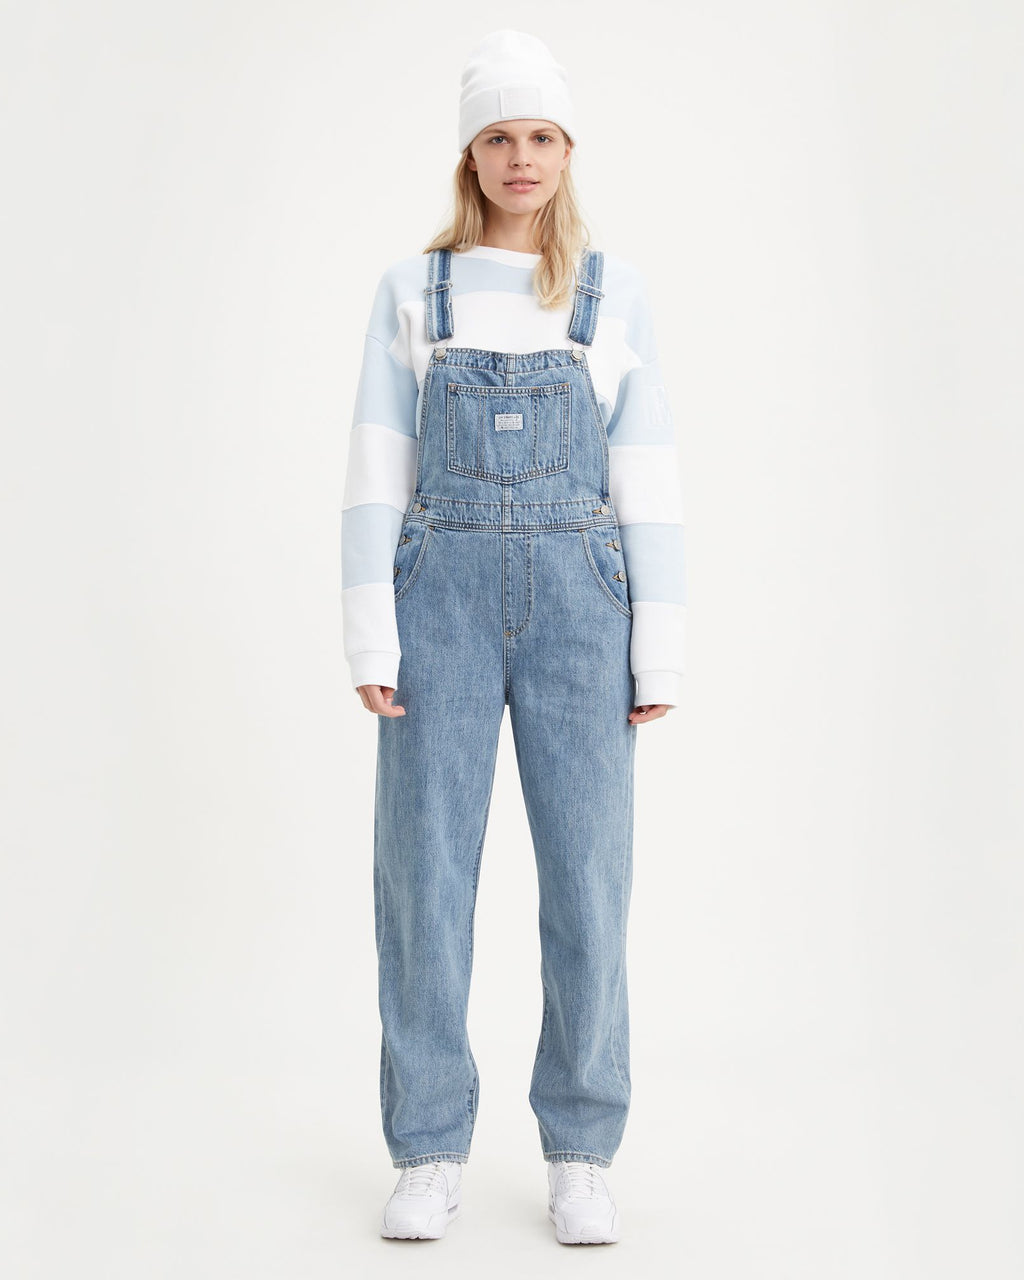 Levi's - Vintage Overall - Dead Stone